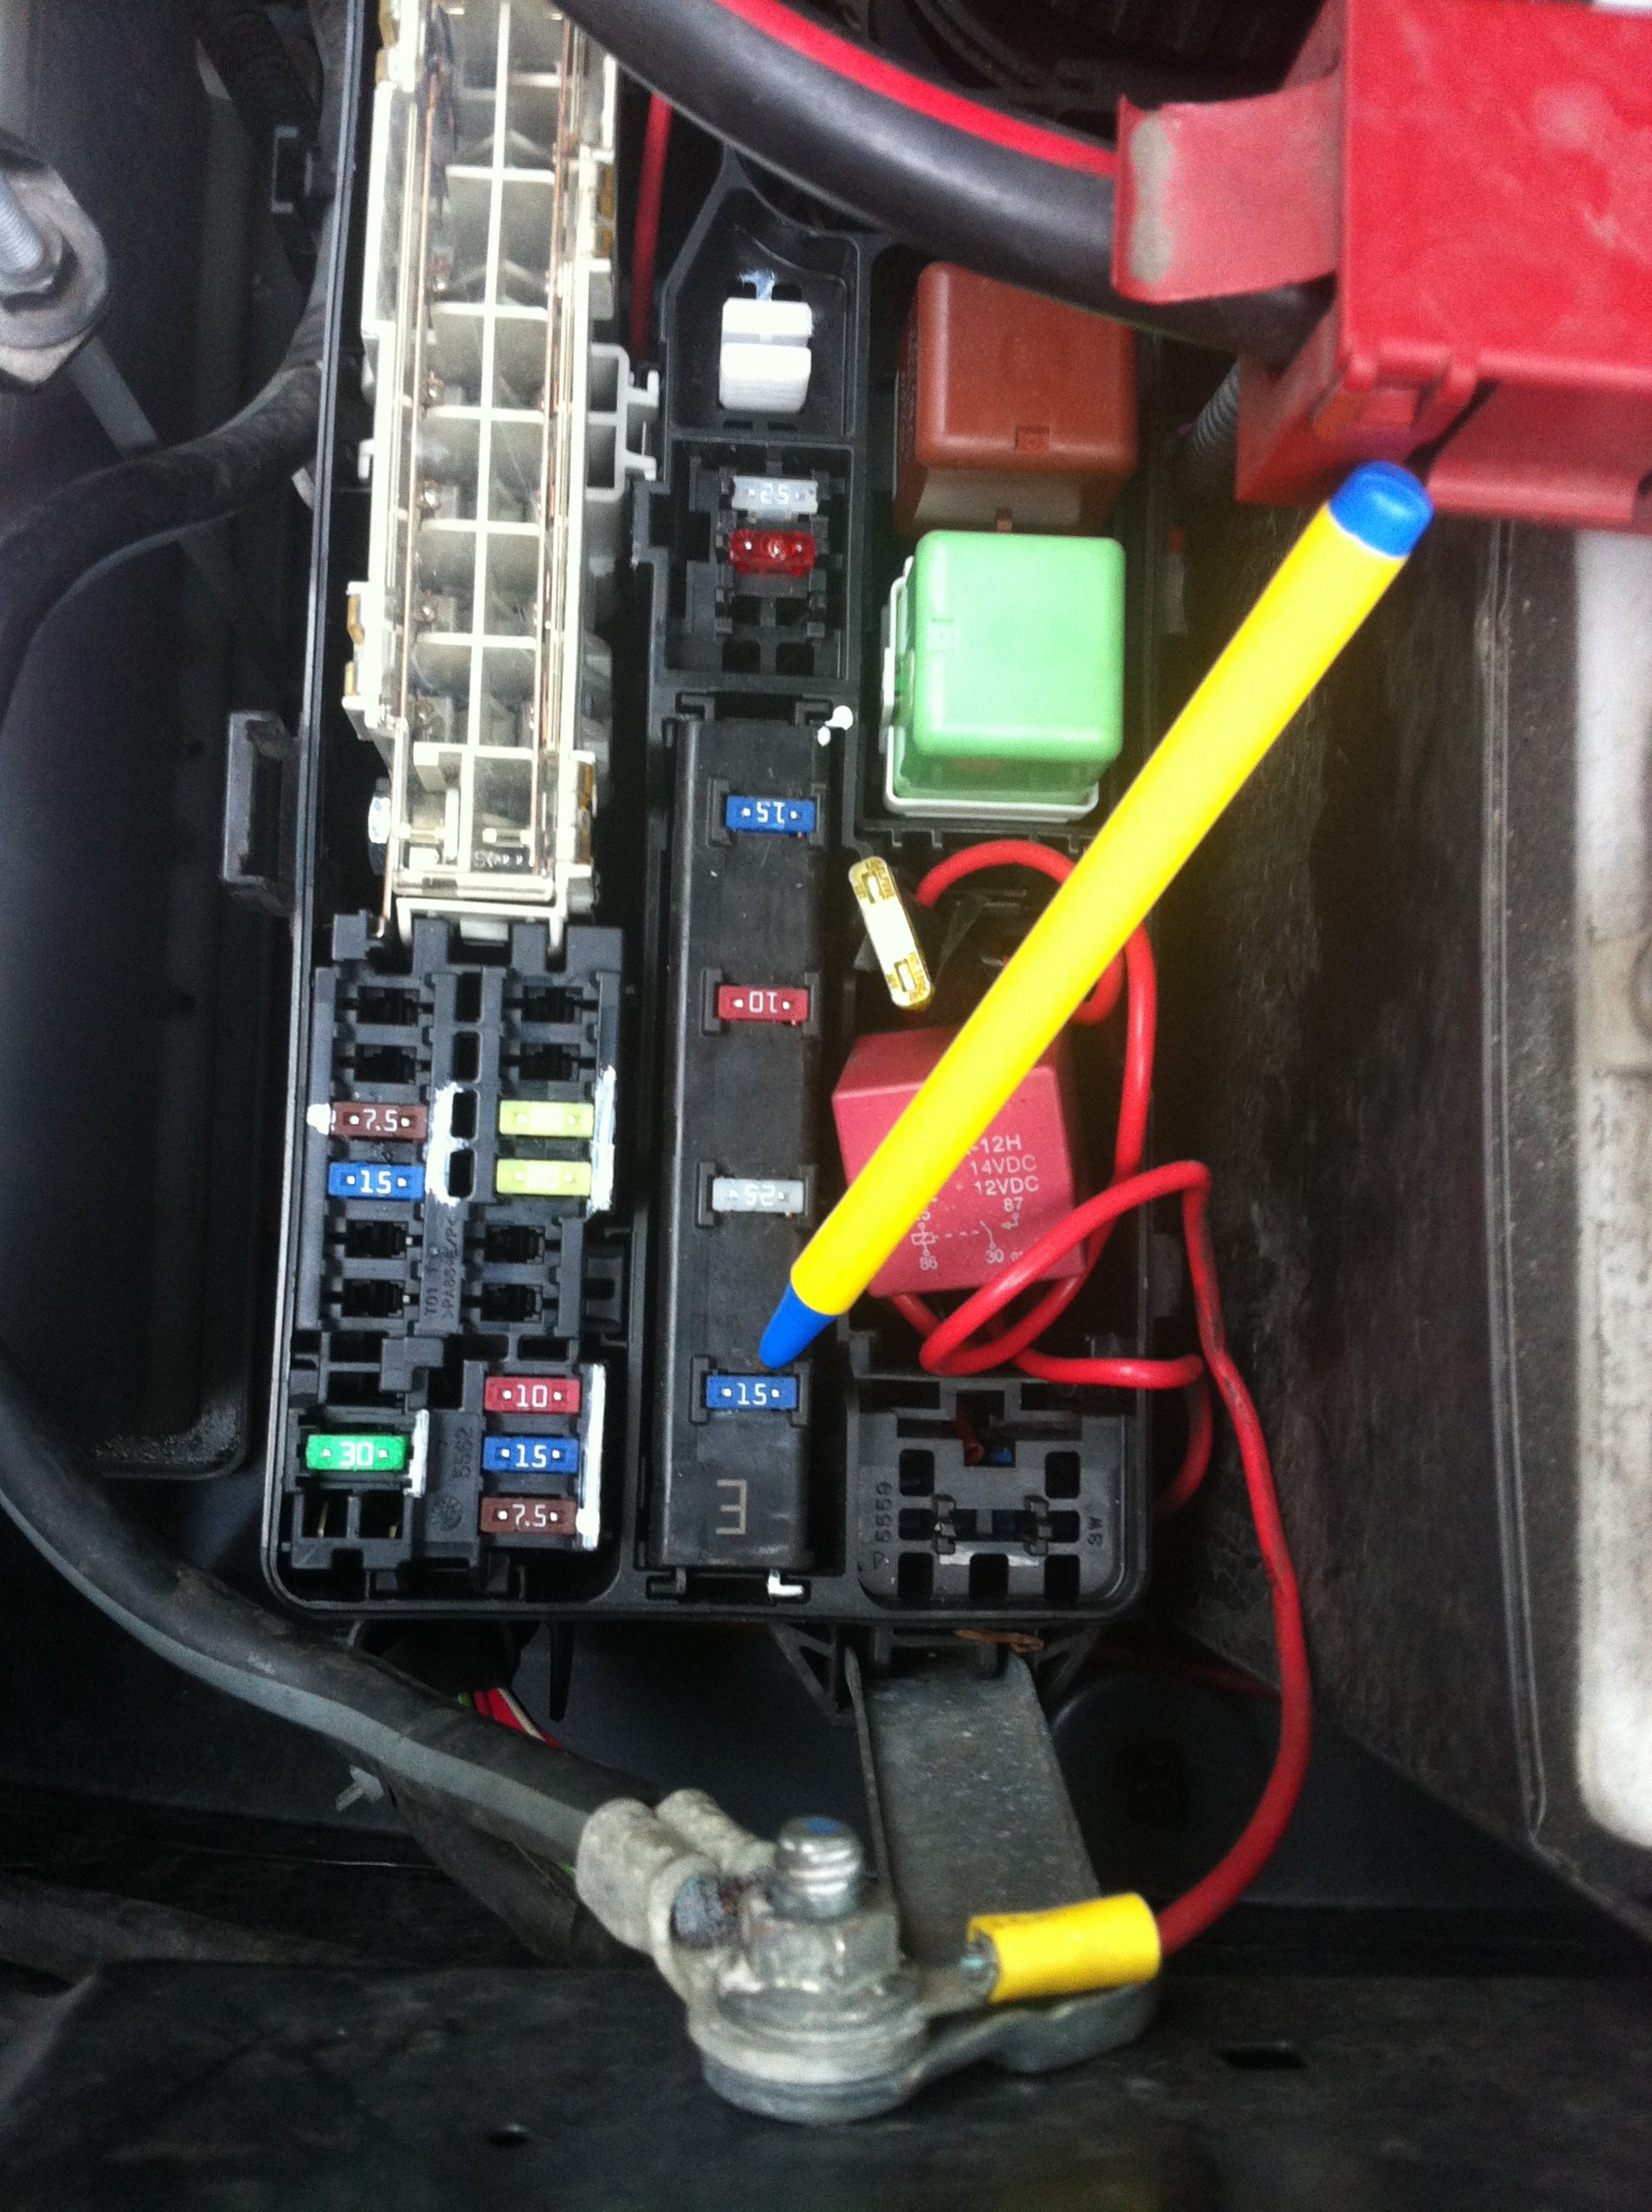 2012 Prius C Fuse Box Manual Guide Wiring Diagram Need To Locate The Magnetic Clutch Relay For A Air Conditioning 2010 Toyota Hilux N70 2015 Location